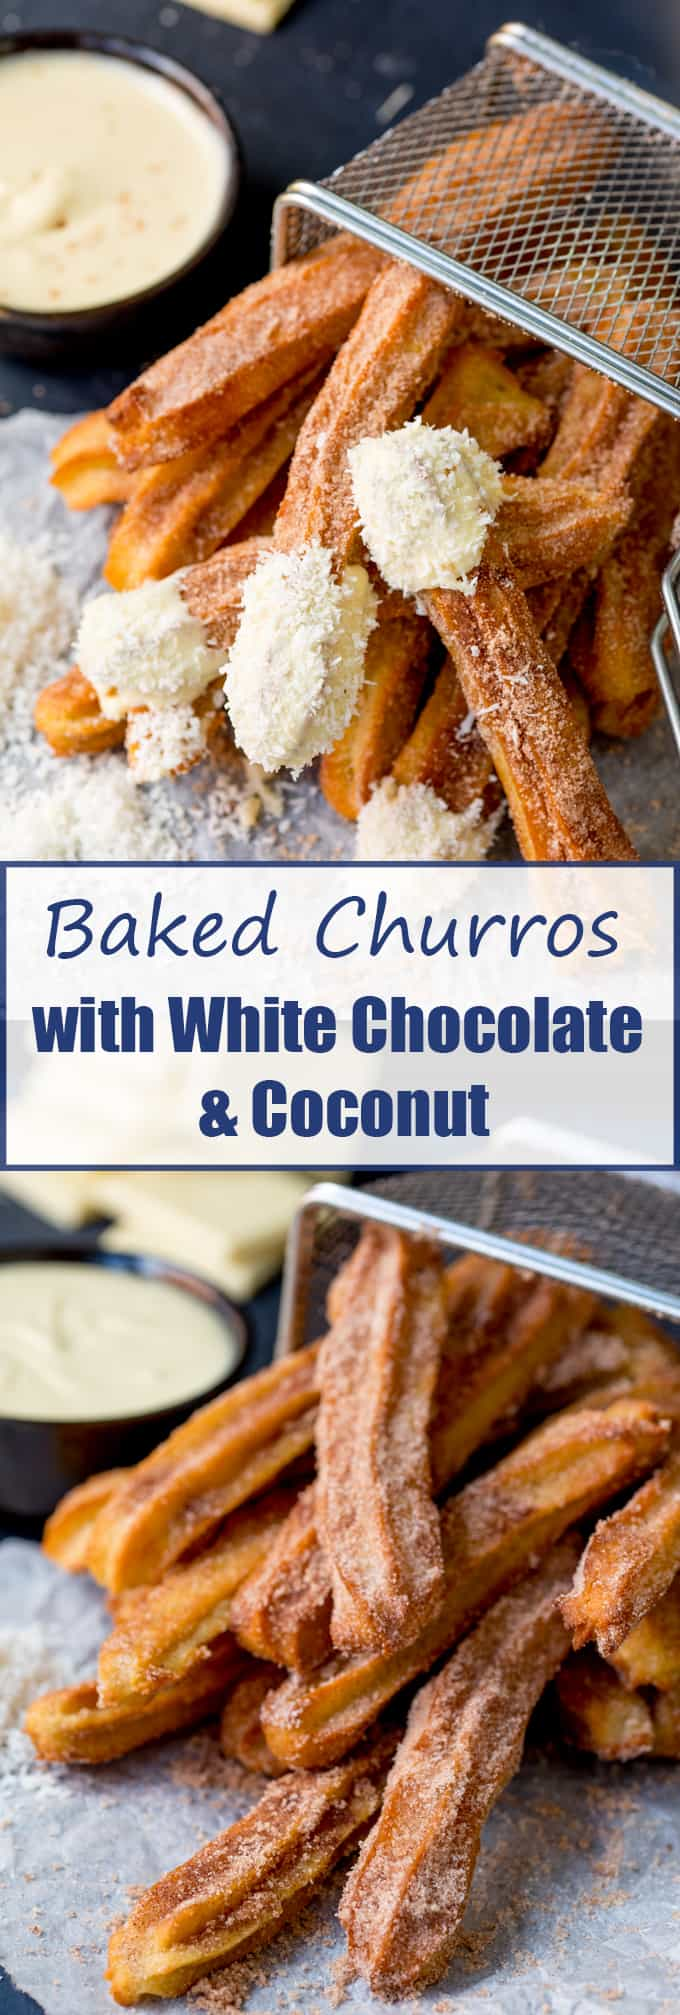 Baked Churros with White Chocolate and Coconut - festival food with an upgrade! The kids (and grown-ups) love them as a weekend treat!